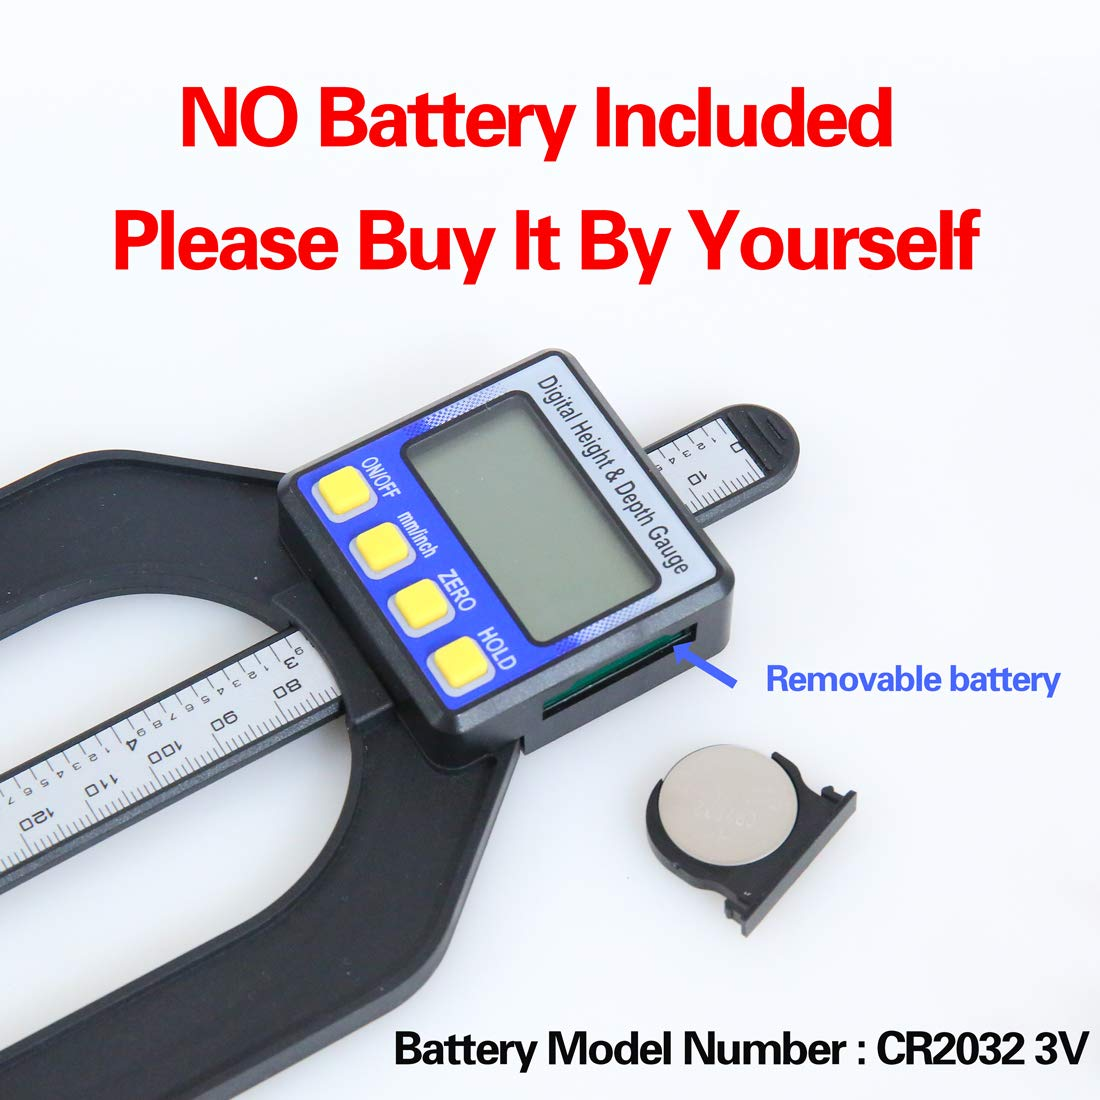 .5 lb cyl Class 4 EACH Electronic Balance Avoirdupois Weights with NVLAP Certificate 8840W